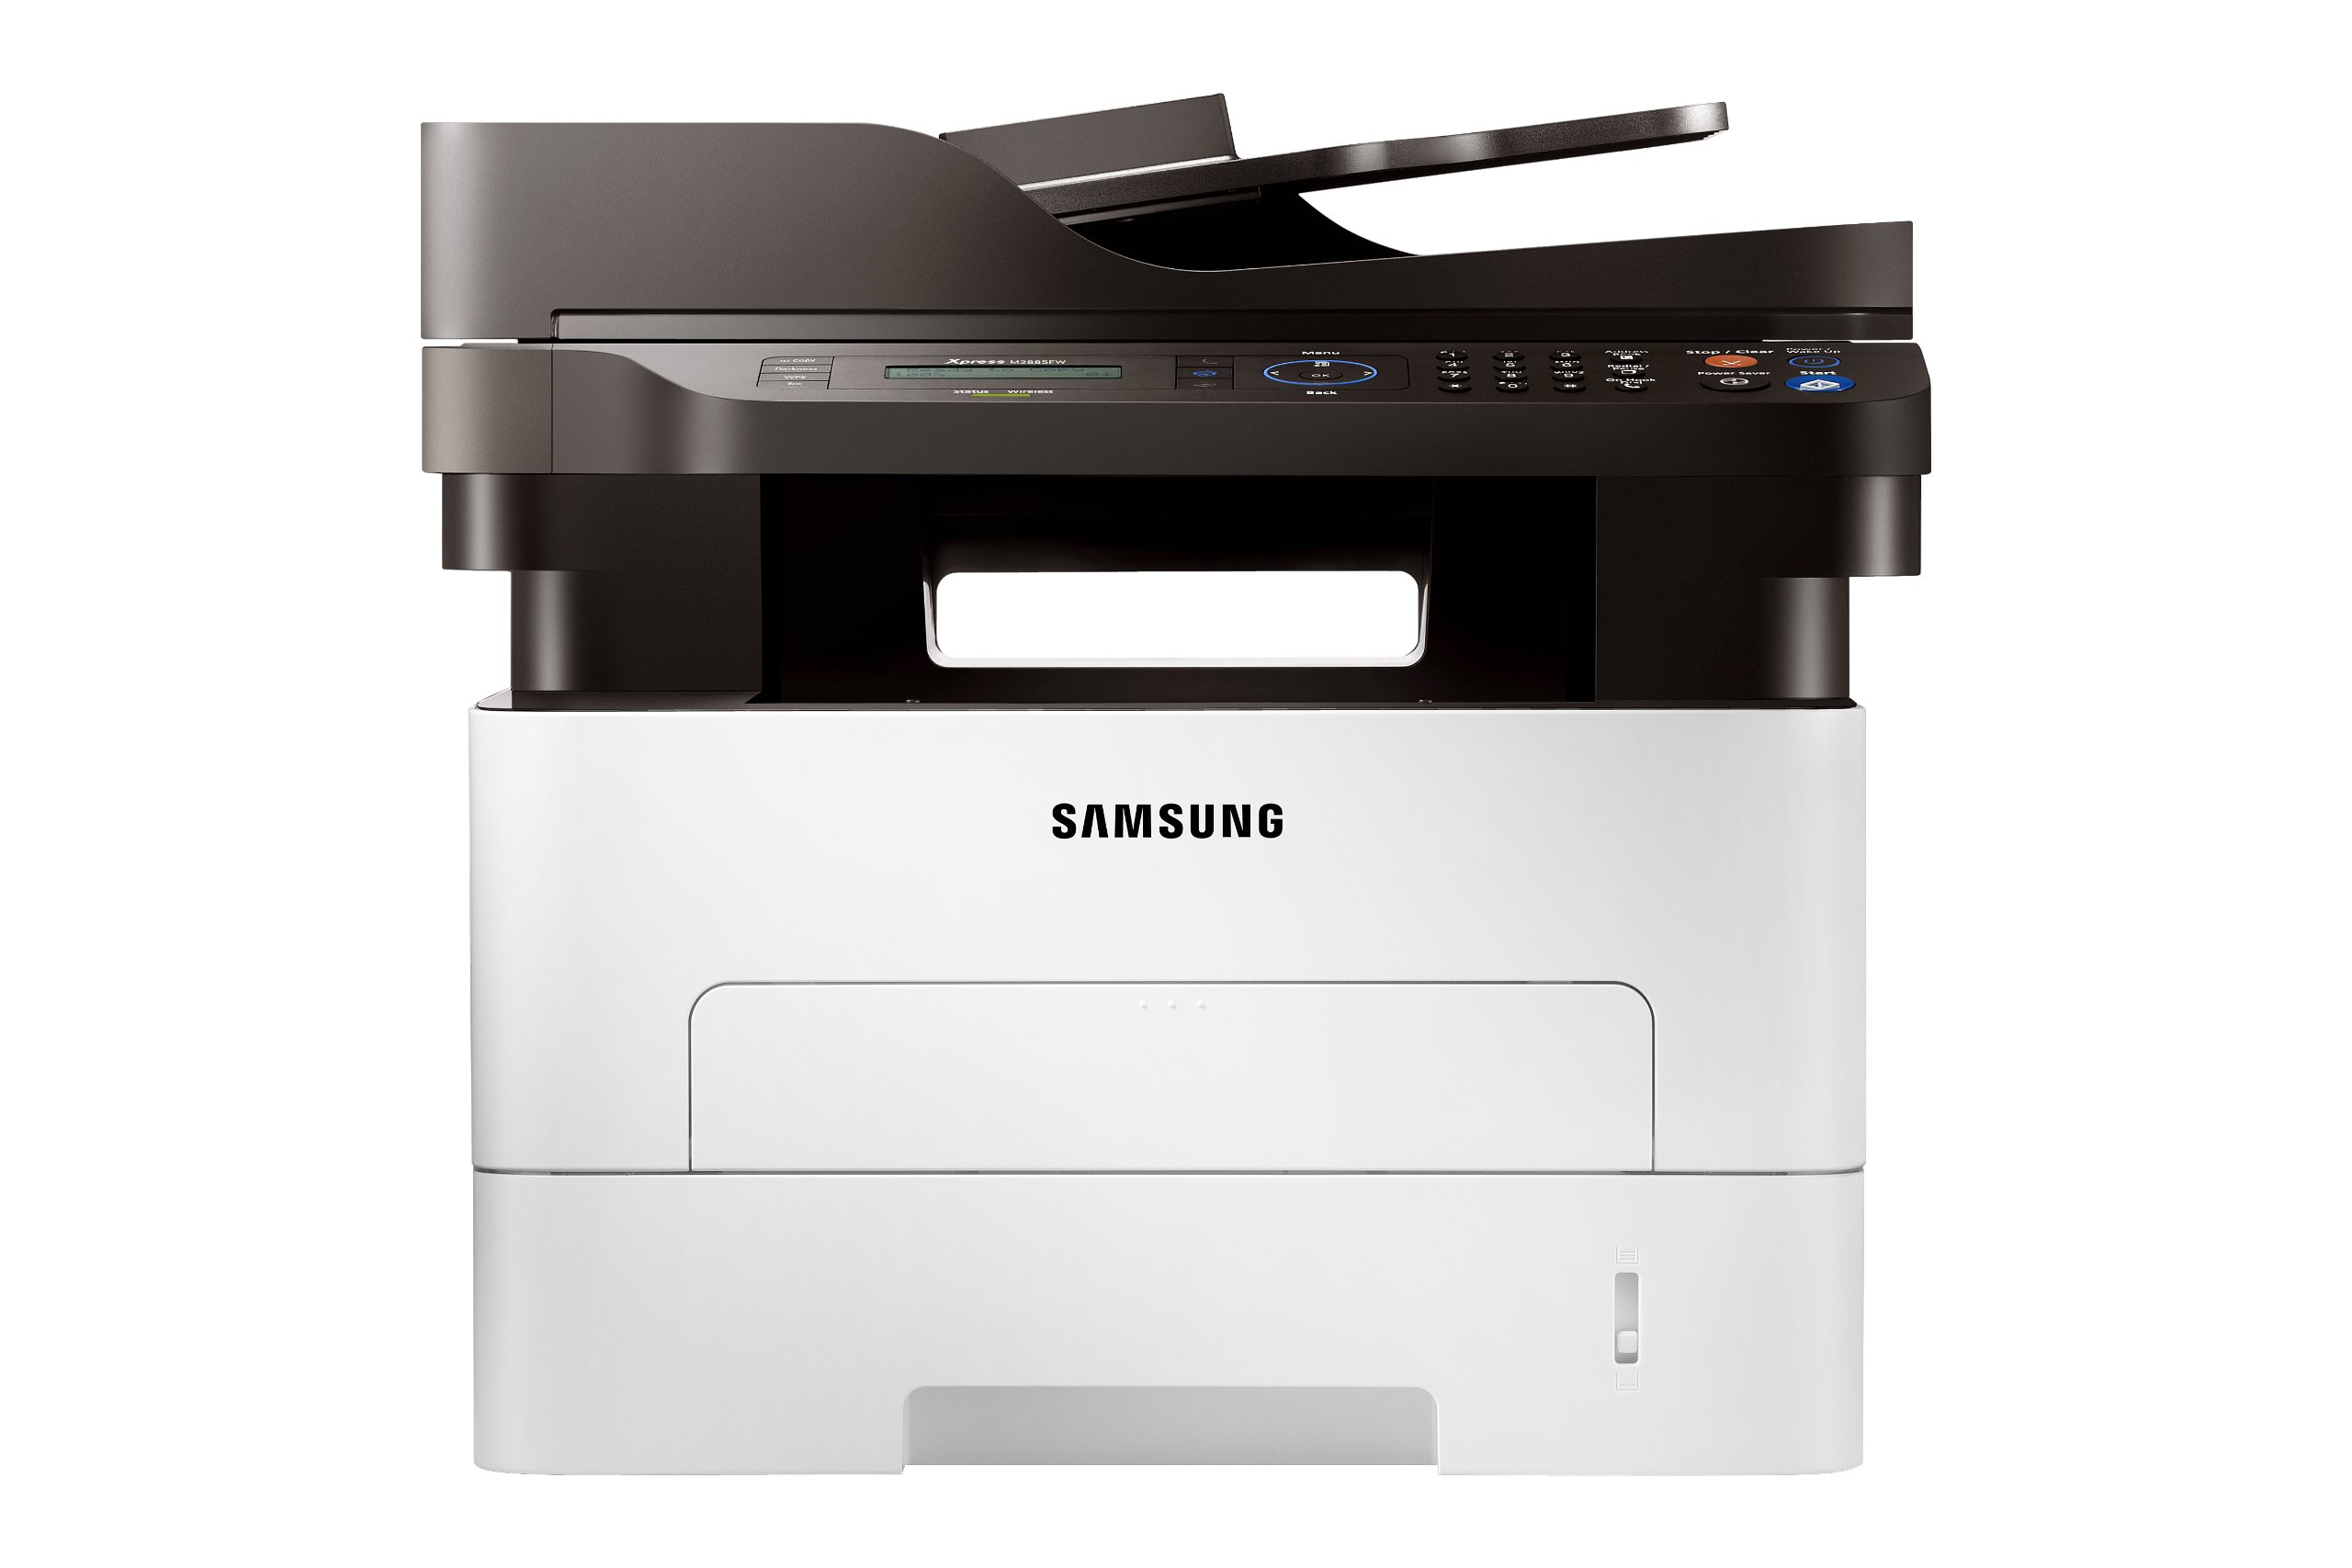 Samsung SL-M2885FW/XAA Wireless Monochrome Printer with Scanner, Copier and Fax, Amazon Dash Replenishment Enabled